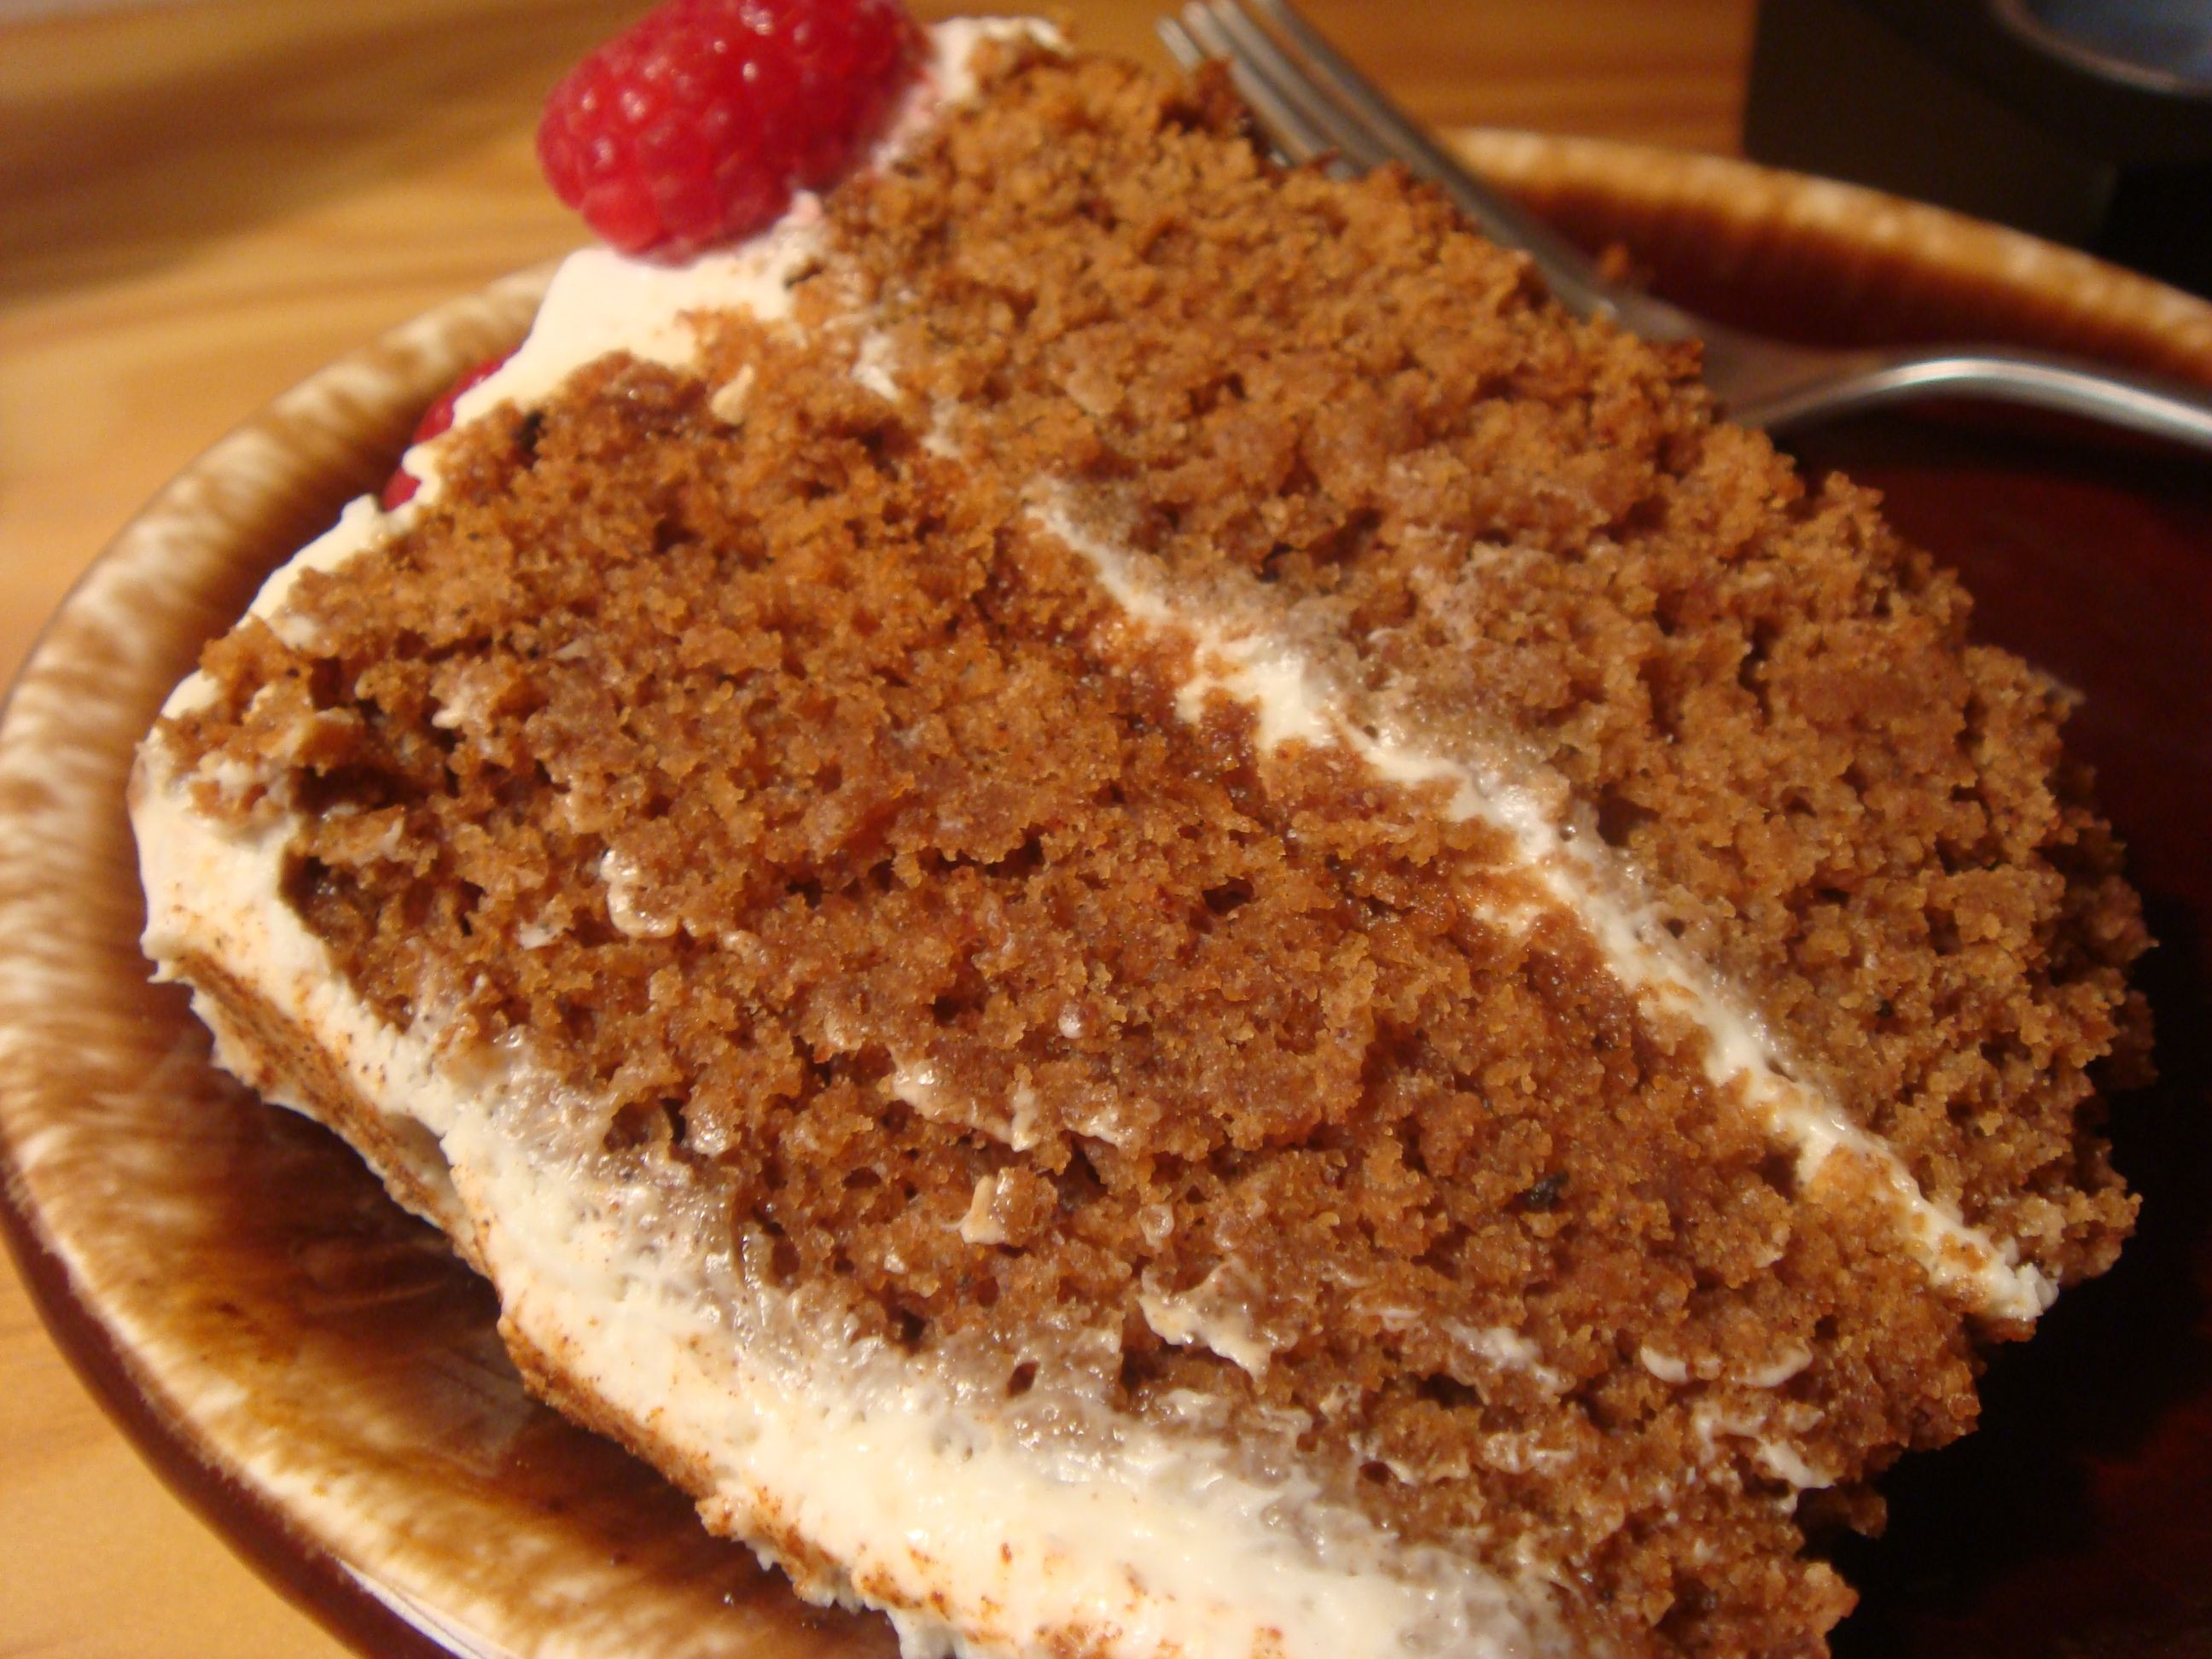 Spice Cake Recipes  Lovebirds' Kitchen Blog Archive Spice Cake with Cream